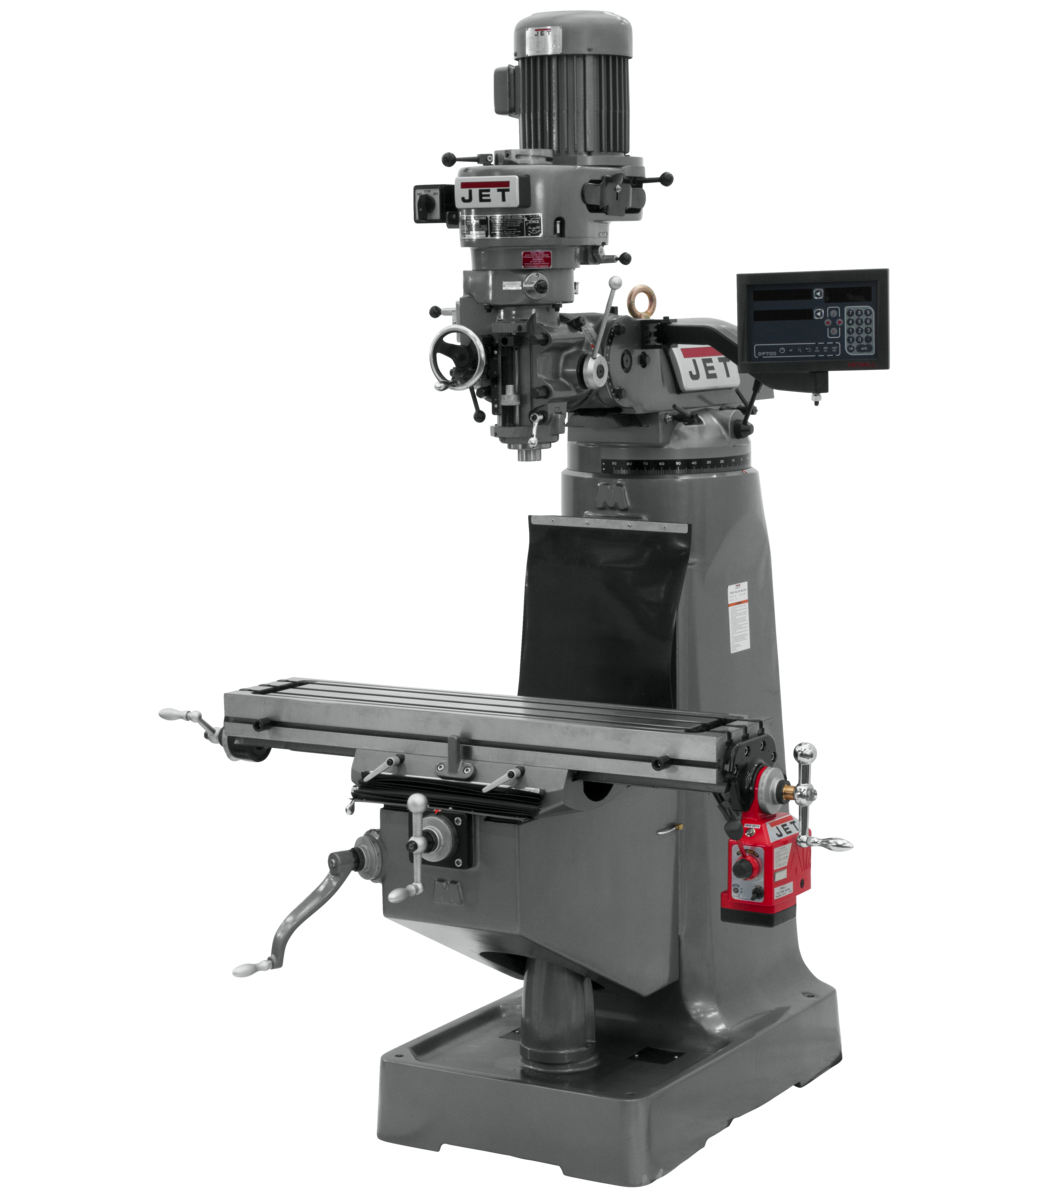 JTM-2 Mill With Newall DP700 DRO With X-Axis Powerfeed